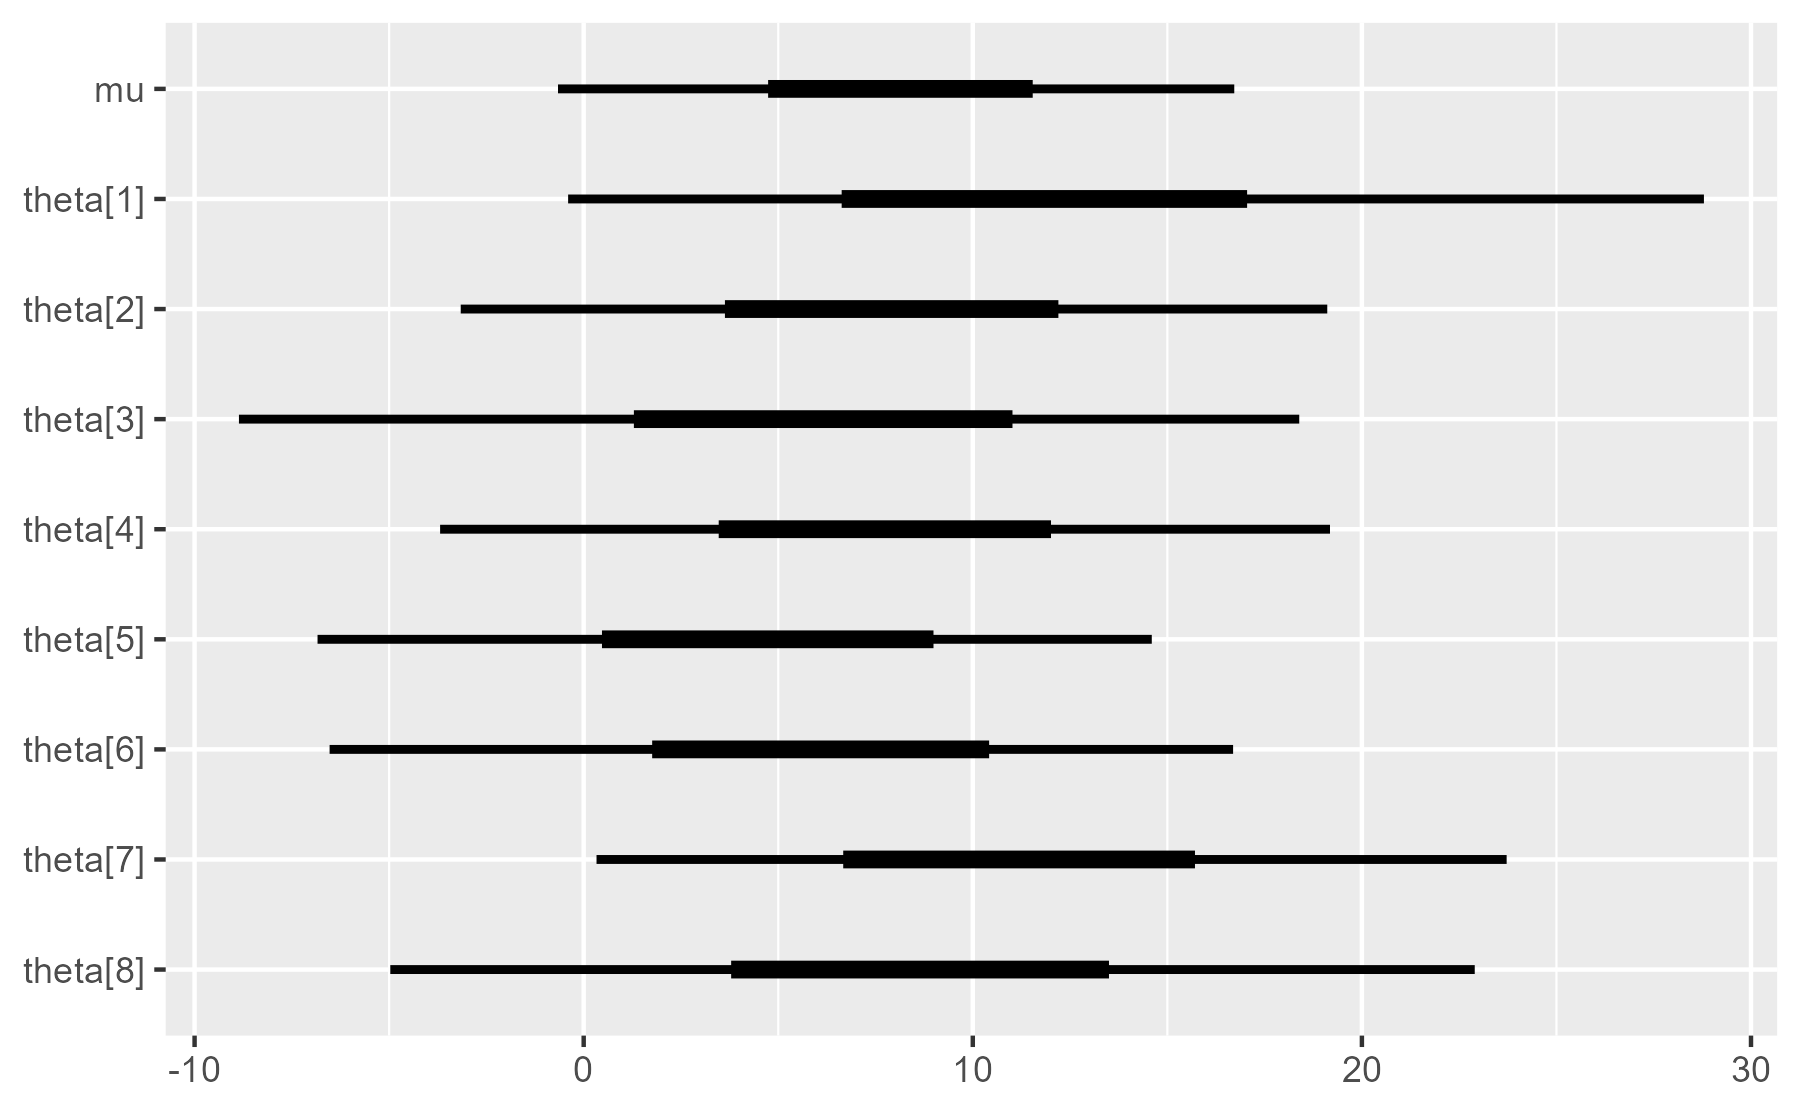 Simplifying ggplot2 code by doing nothing